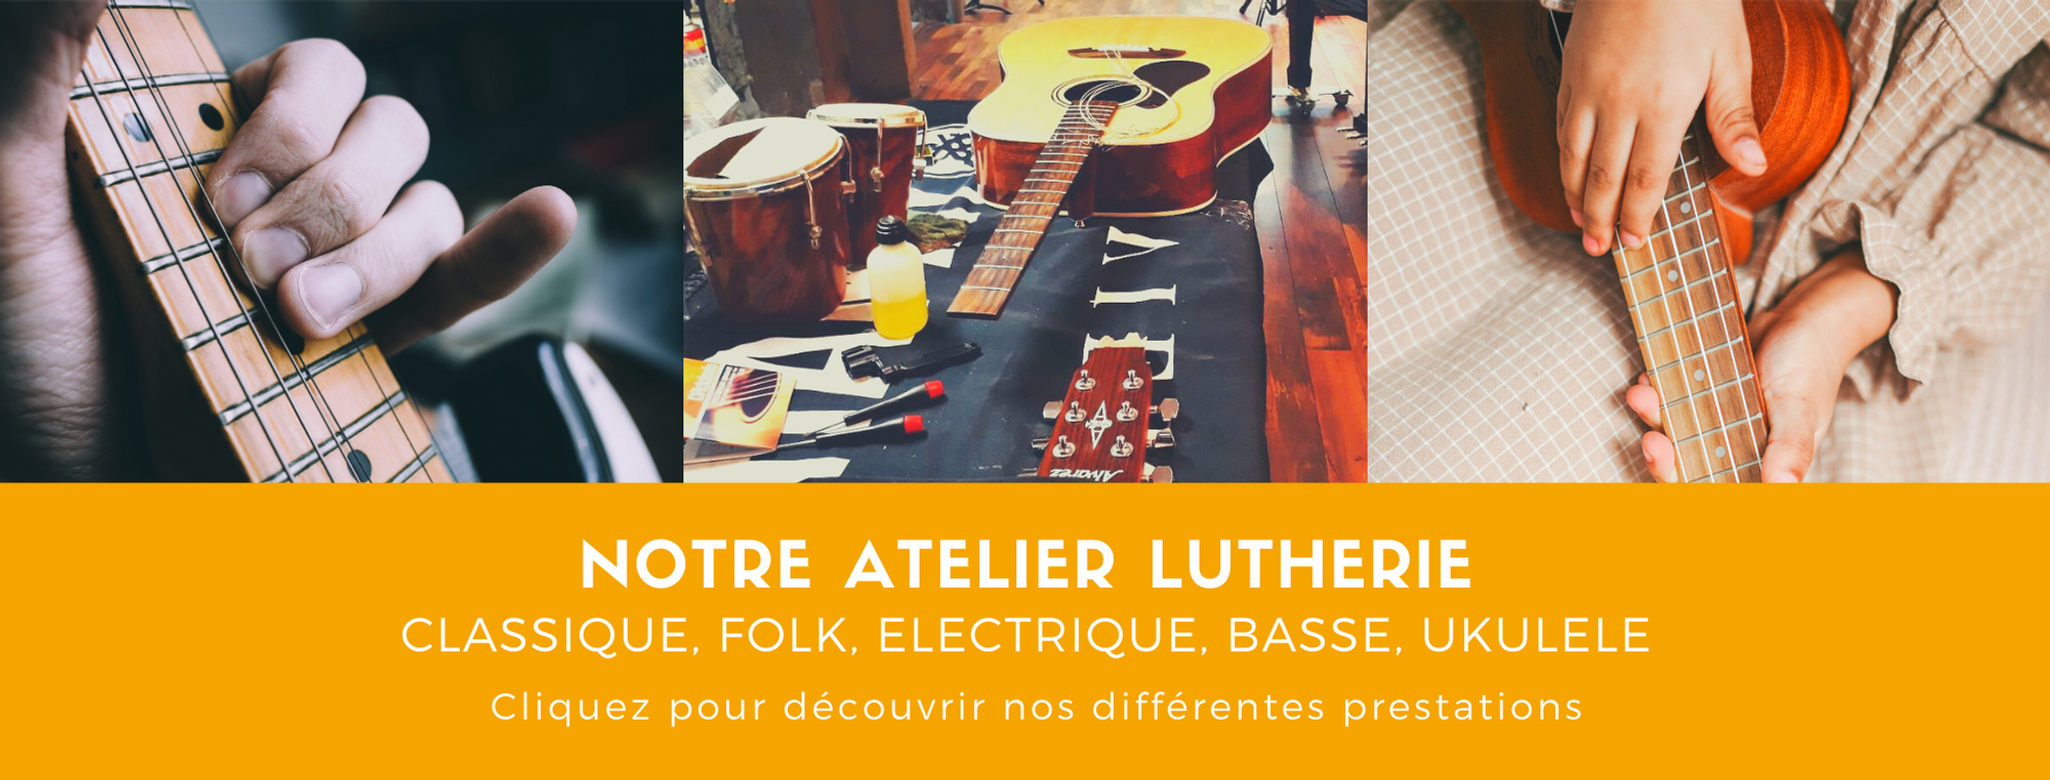 NOTRE ATELIER LUTHERIE